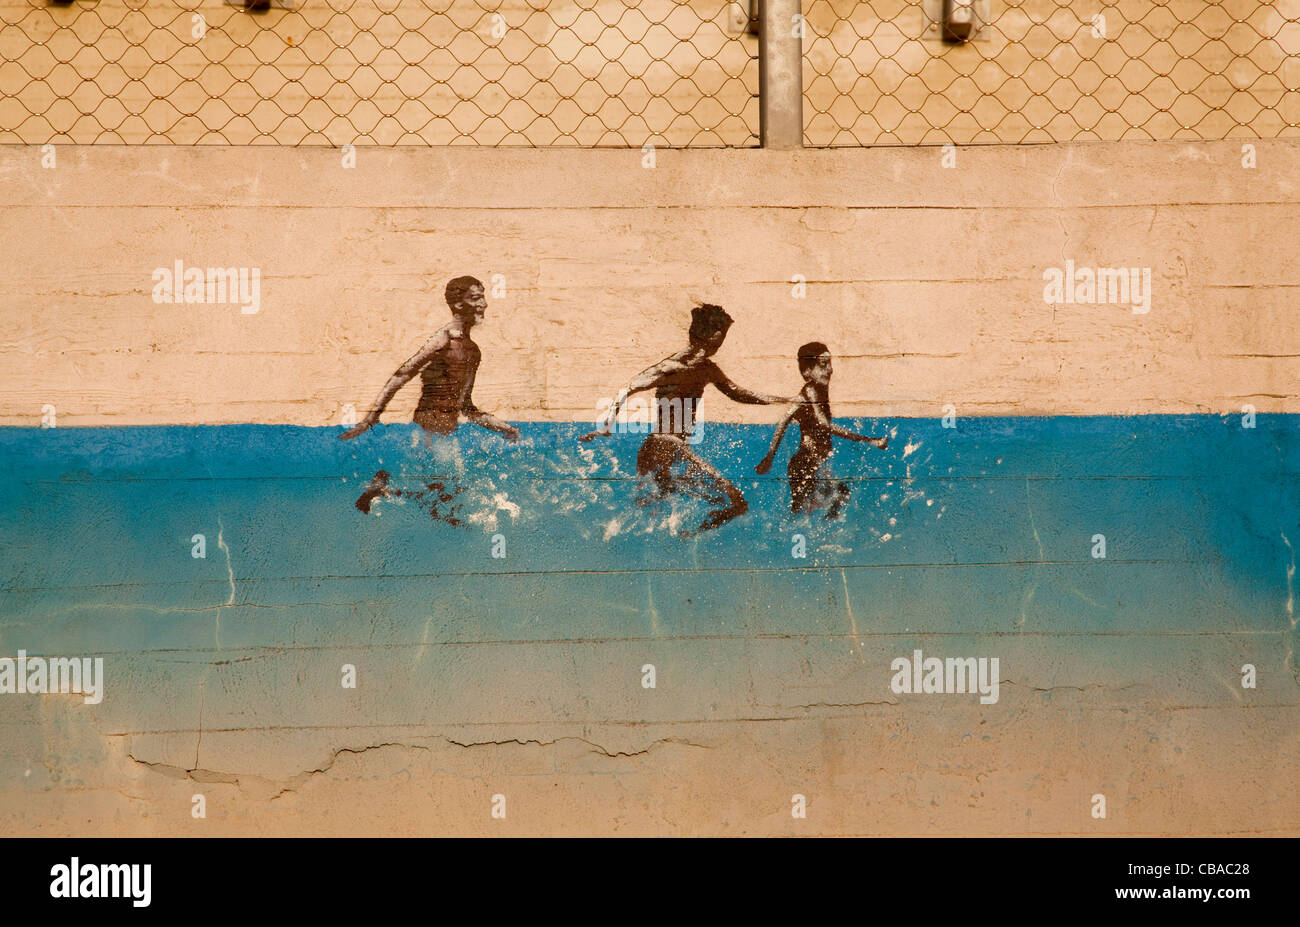 Wall painting of three adolescents splashing through sea in Tel Aviv Israel - Stock Image